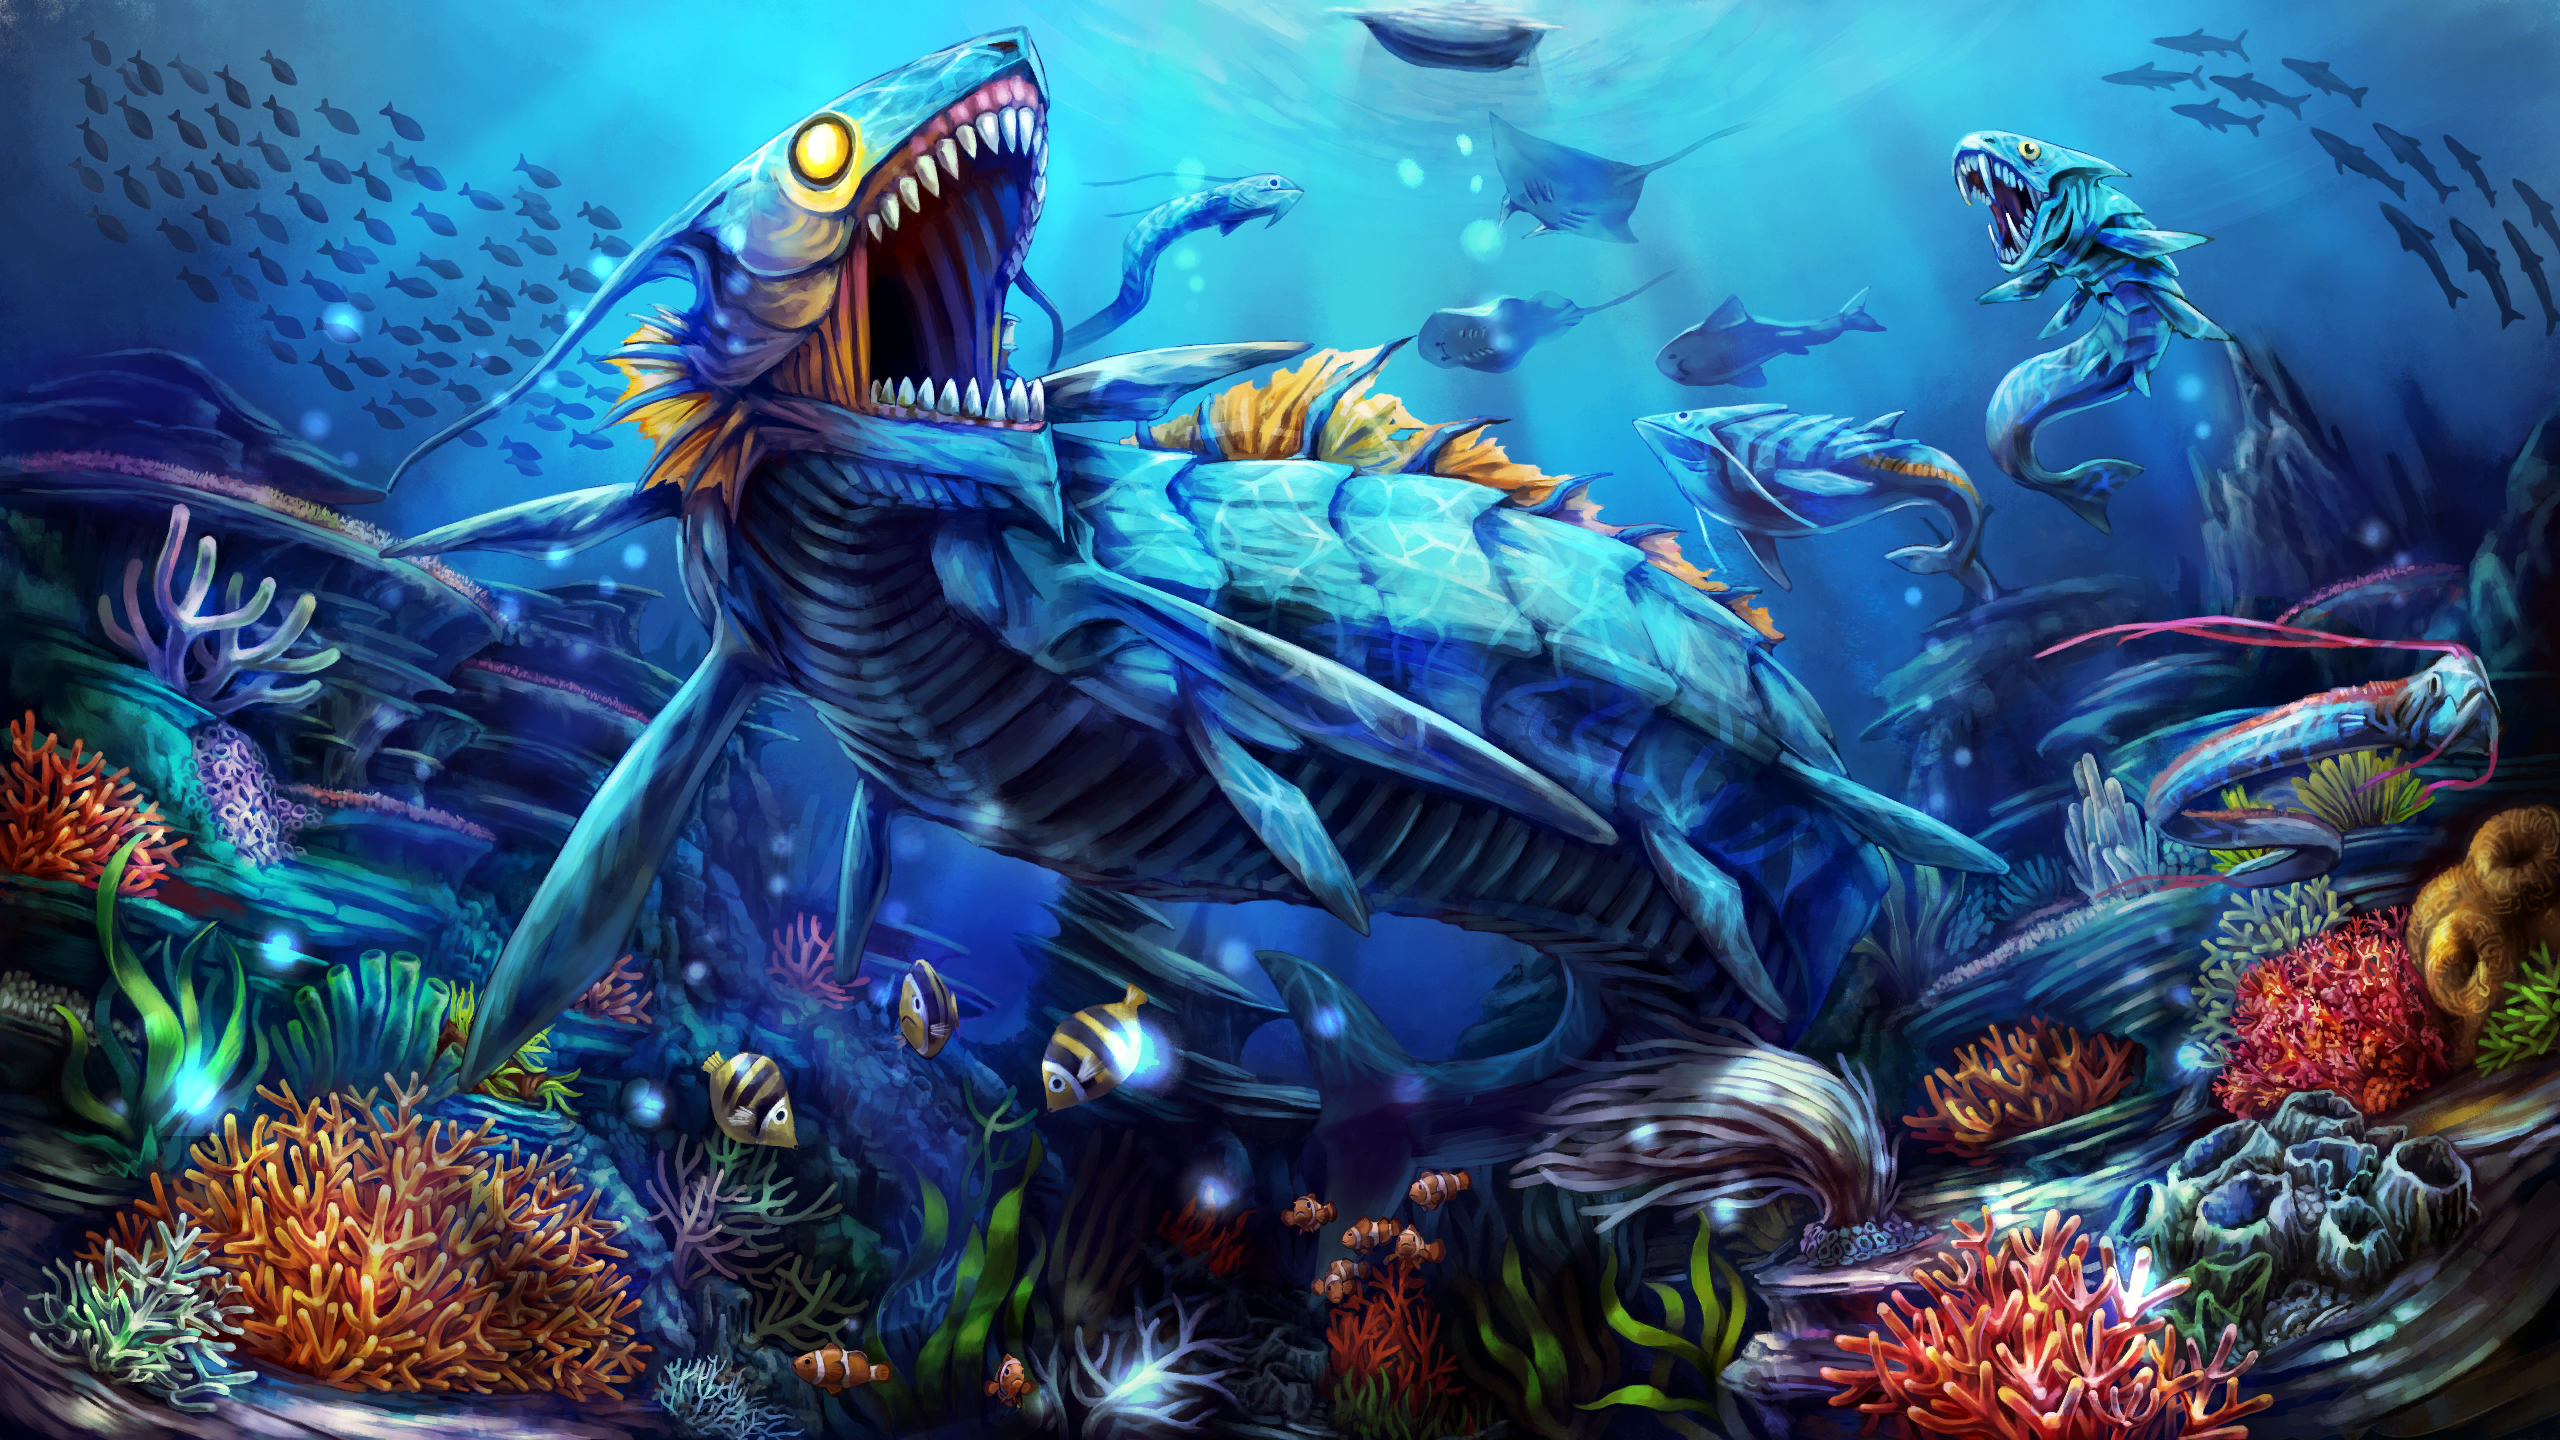 The Mythical Sea Serpent